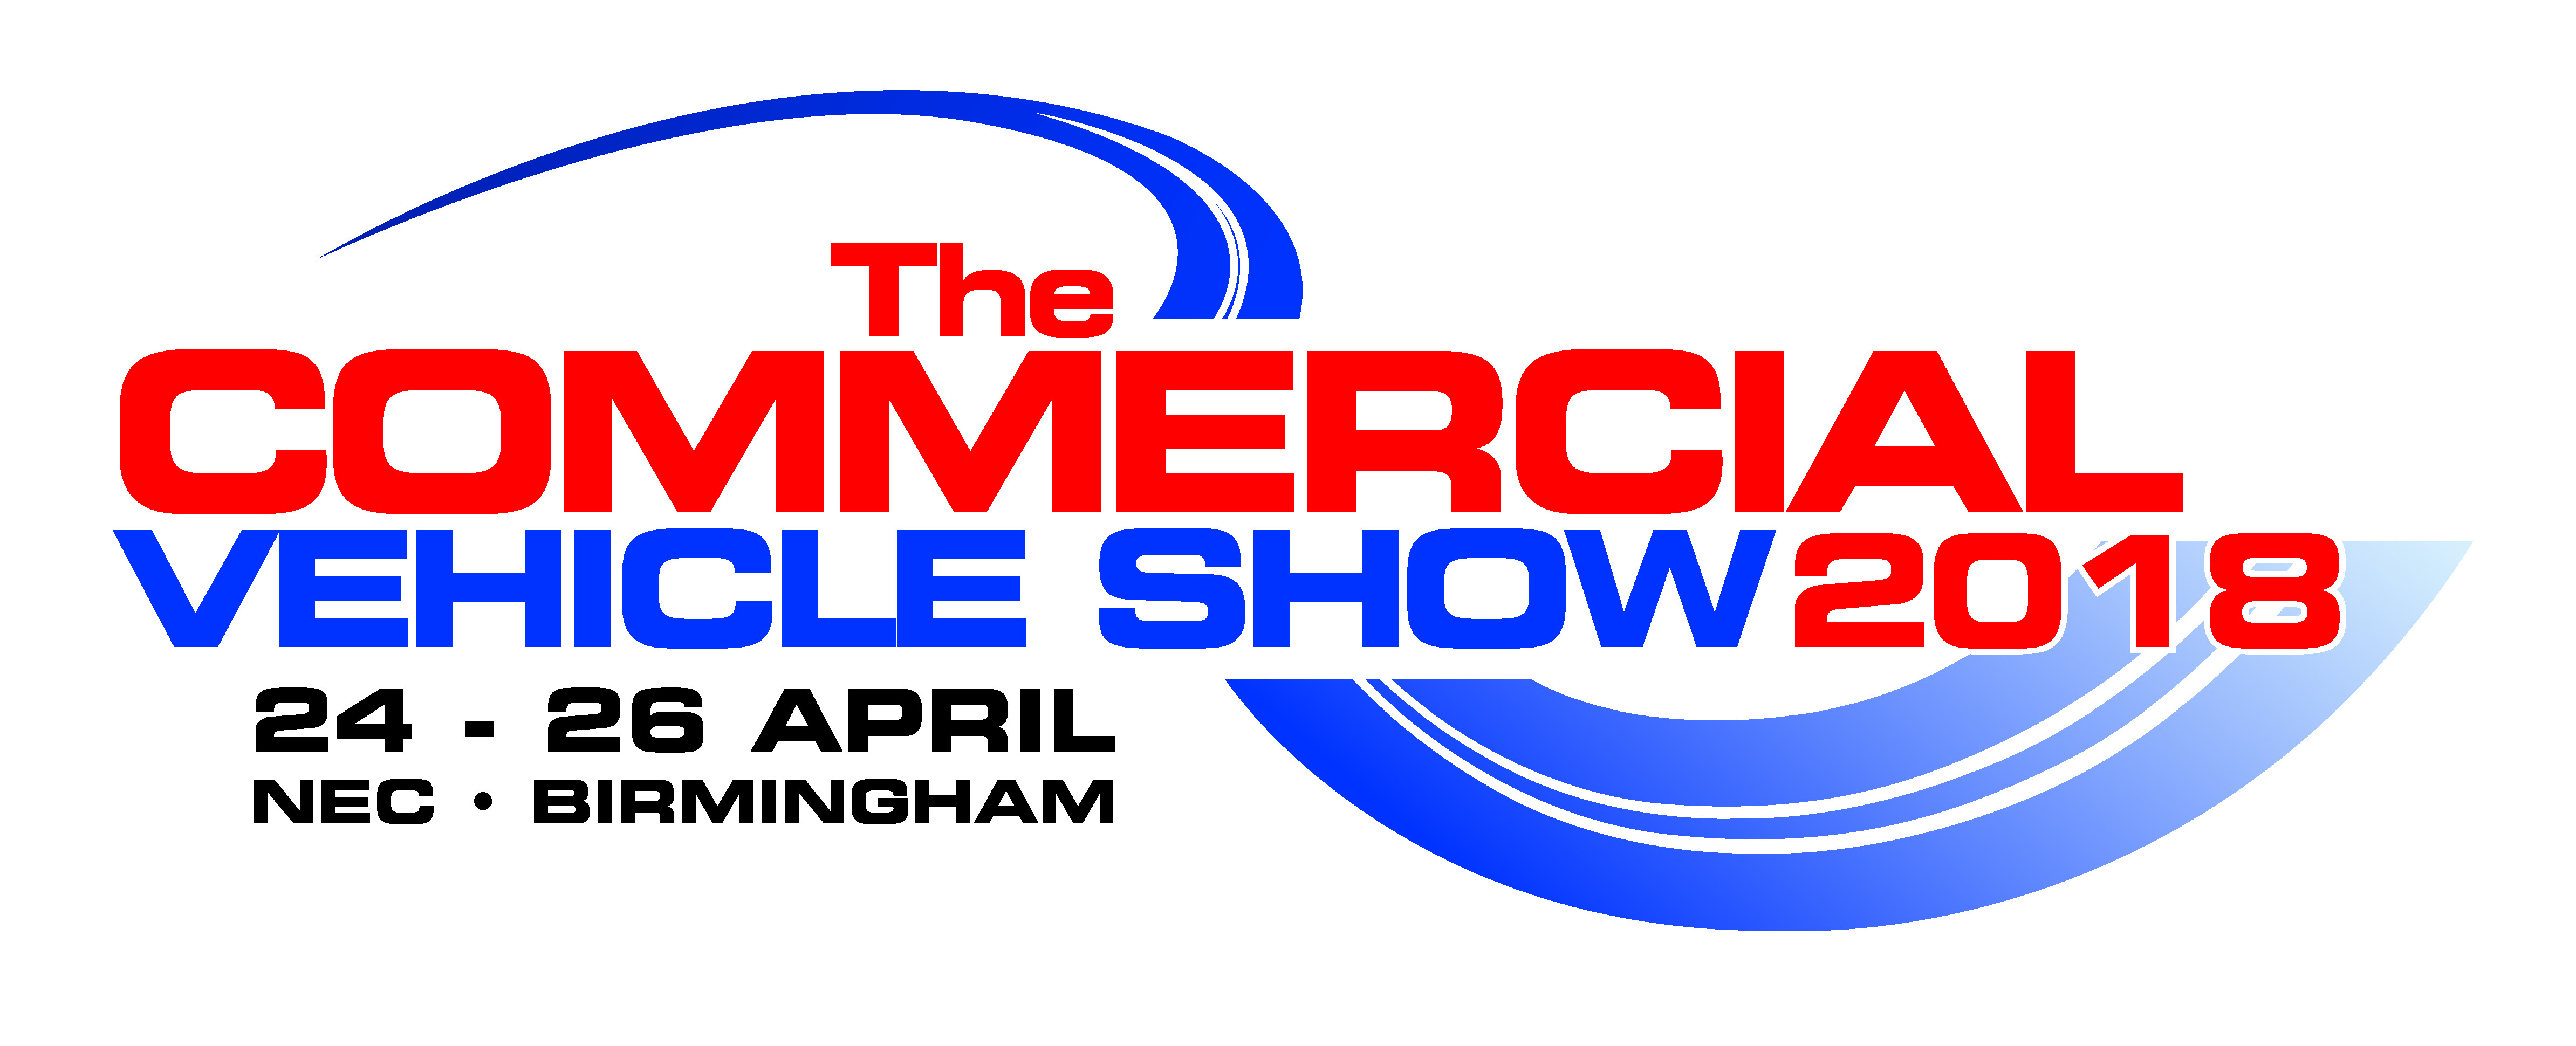 Join us at the Commercial Vehicle show 2018